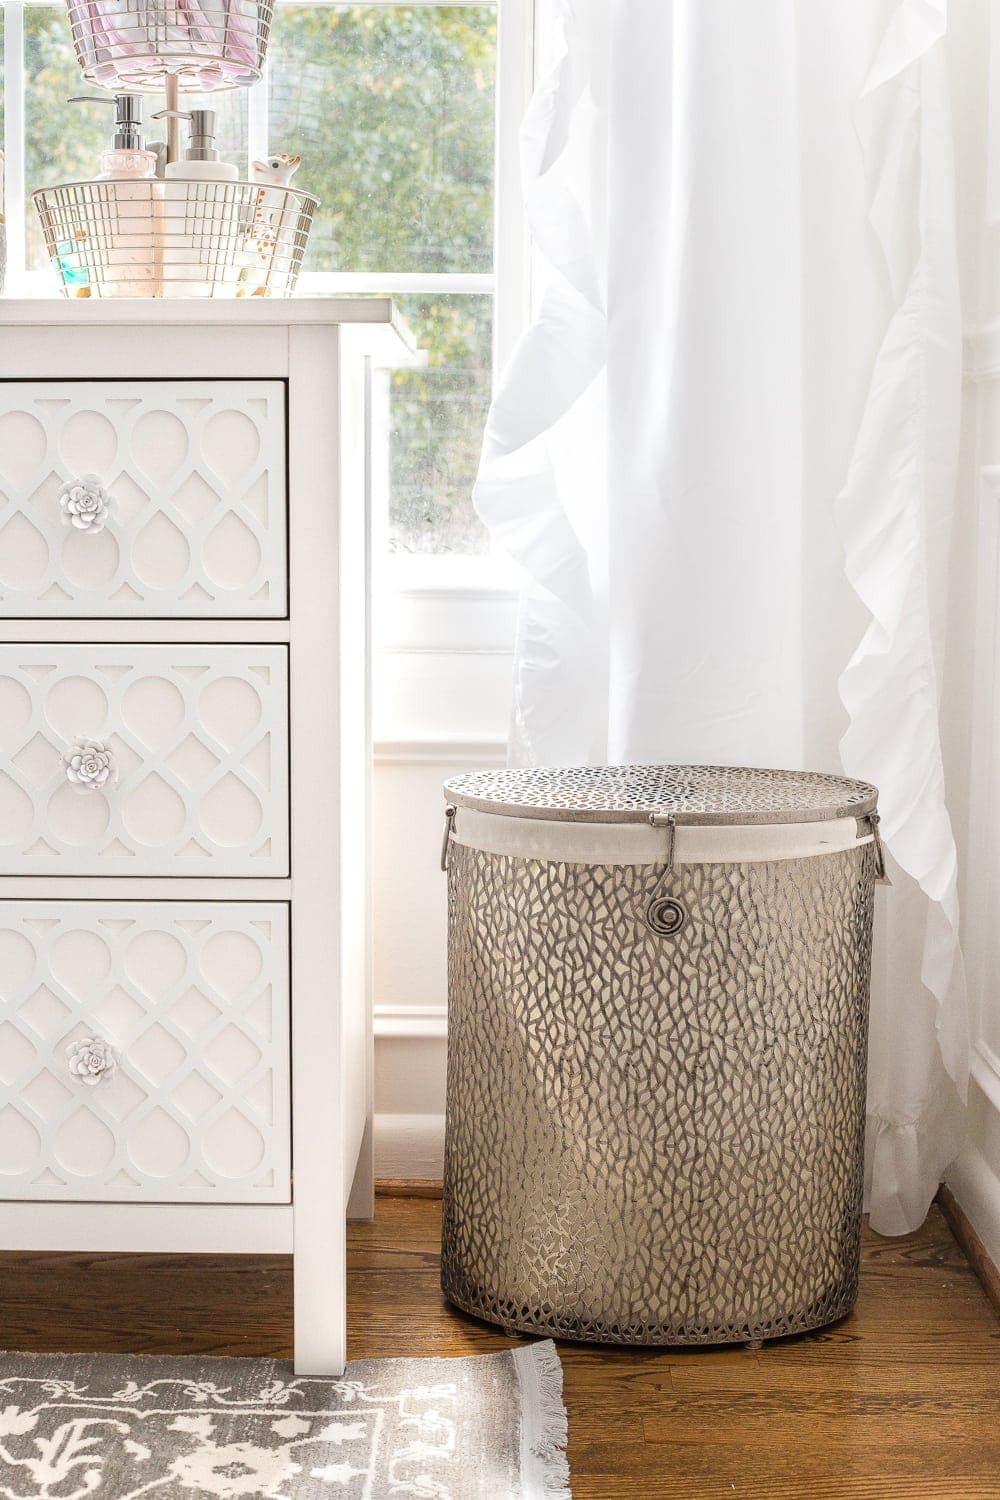 Nursery Organization | Use a lidded hamper with a liner for easy washing and to contain baby smells.